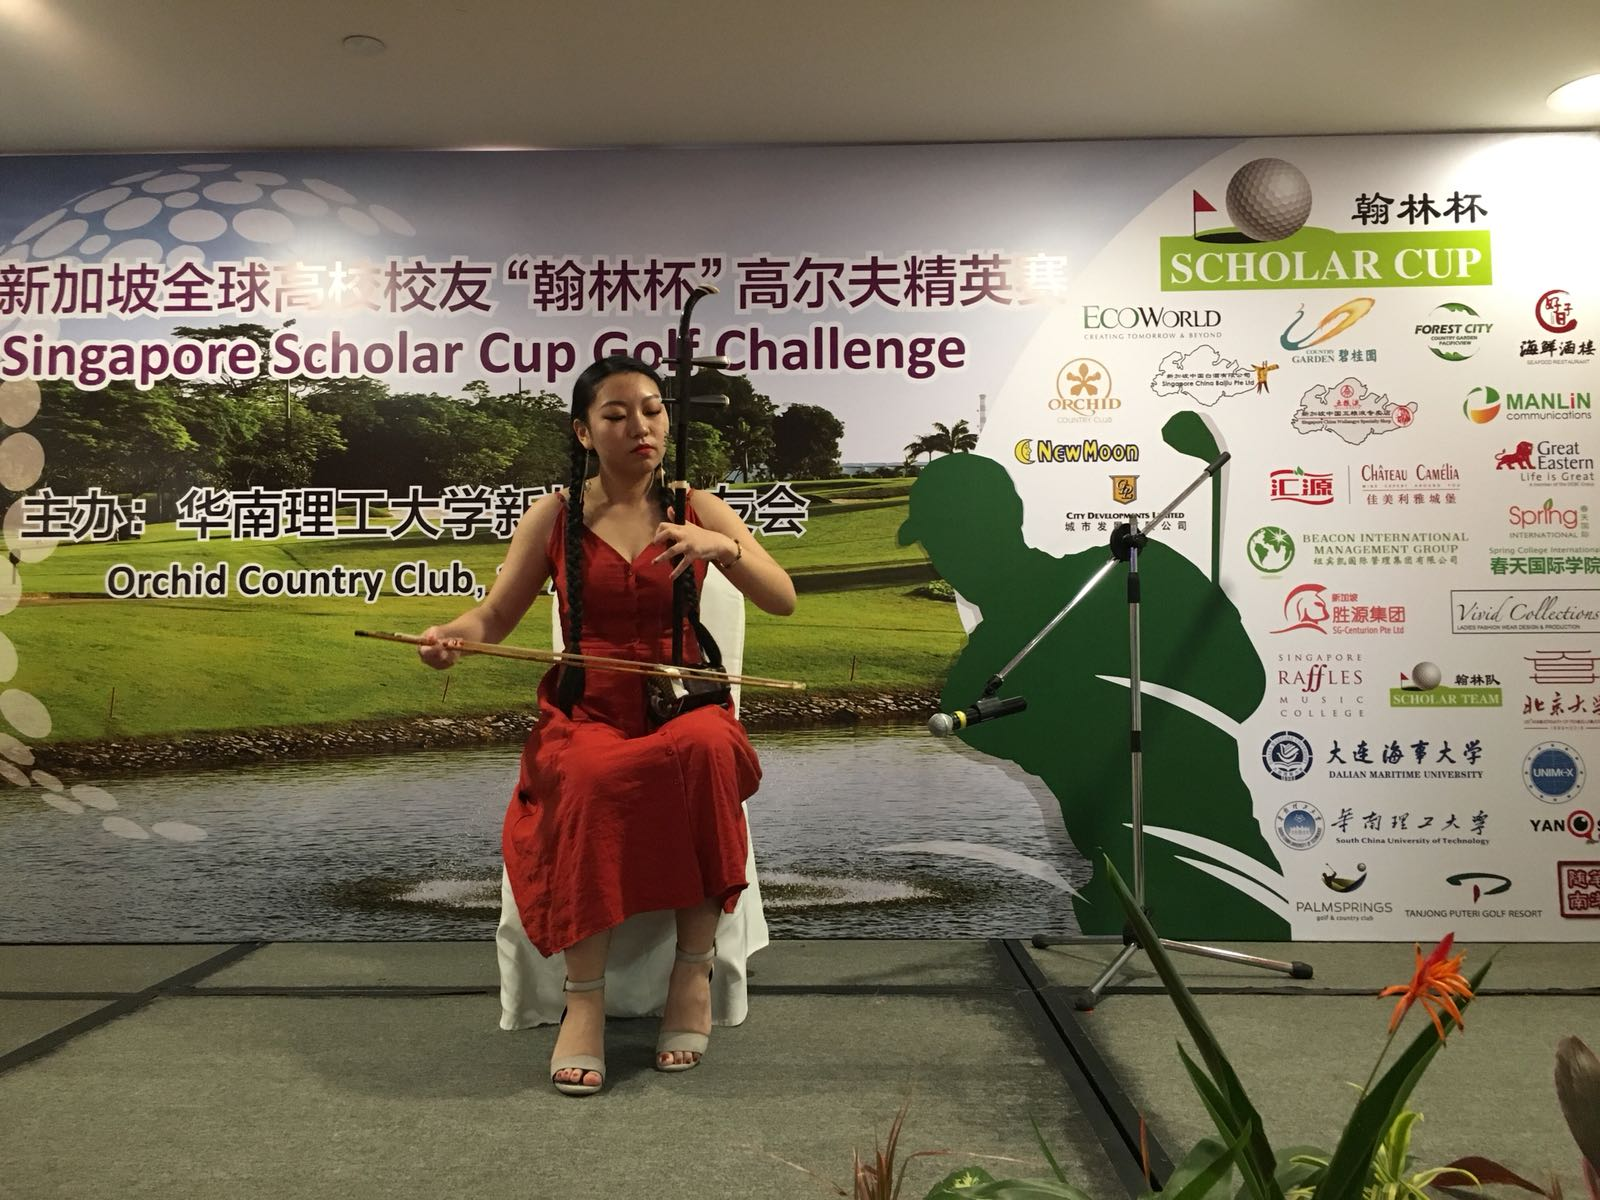 Singapore Scholar Cup Golf Challenge Performance